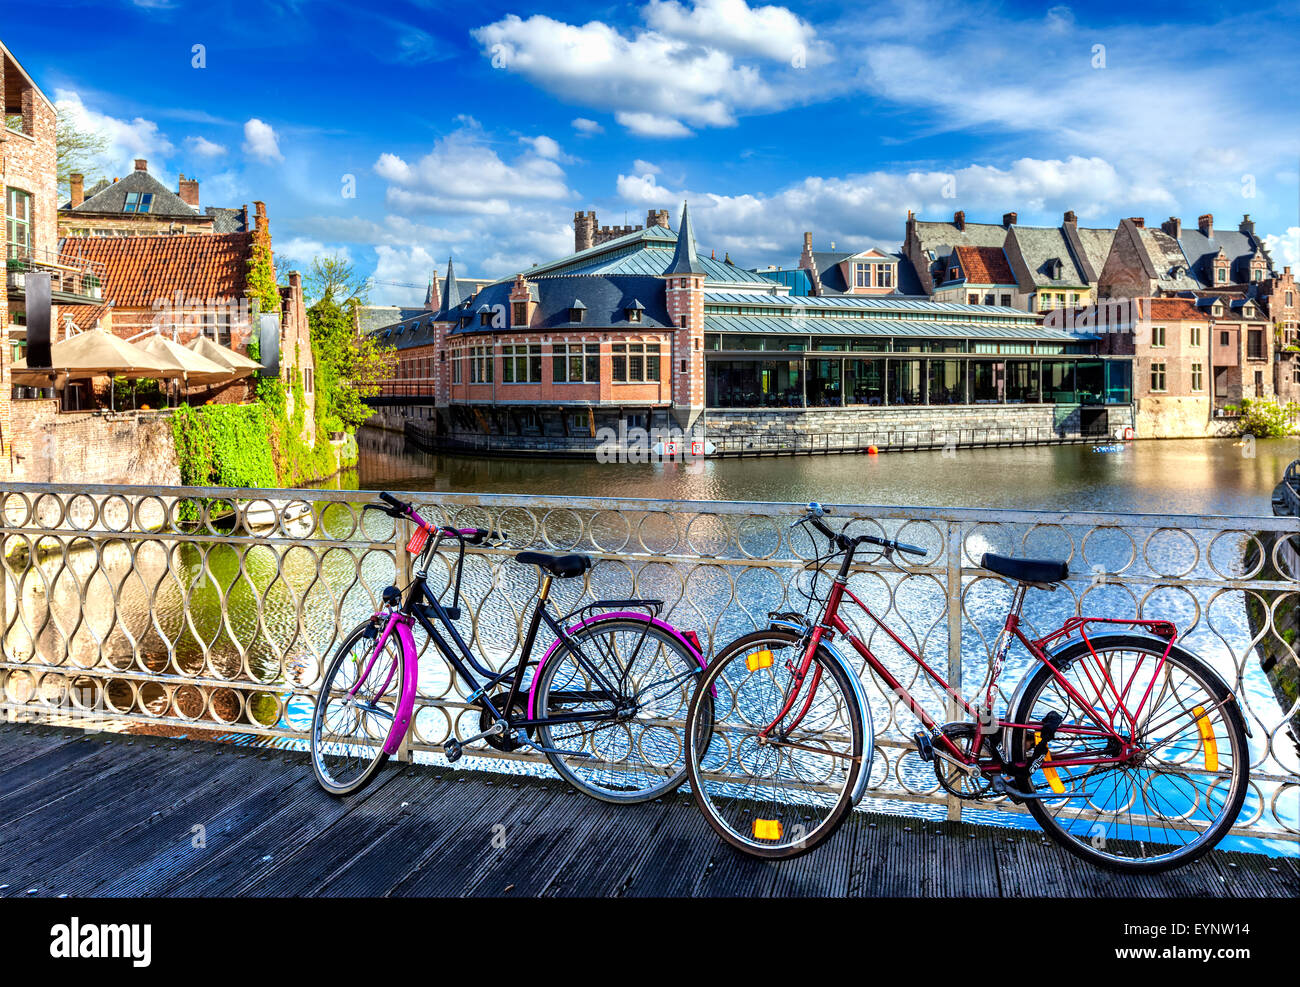 Bridge, bicycles and canal. Ghent, Belghium - Stock Image